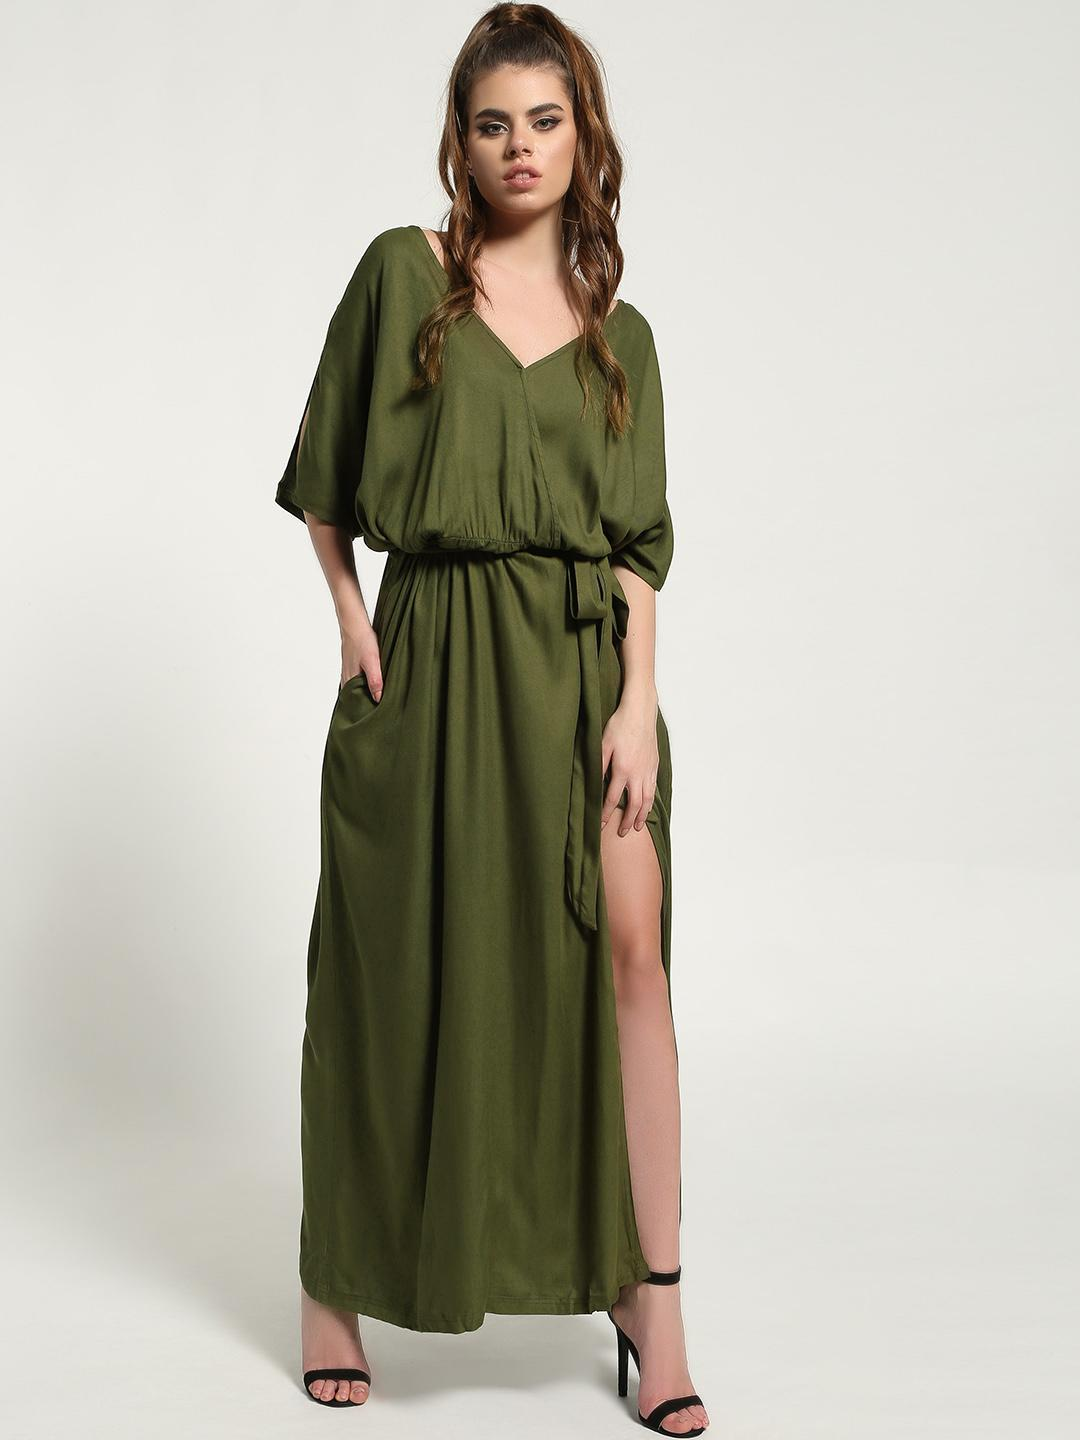 The Paperdoll Company Olive Belted Wrap-Over Slit Maxi Dress 1